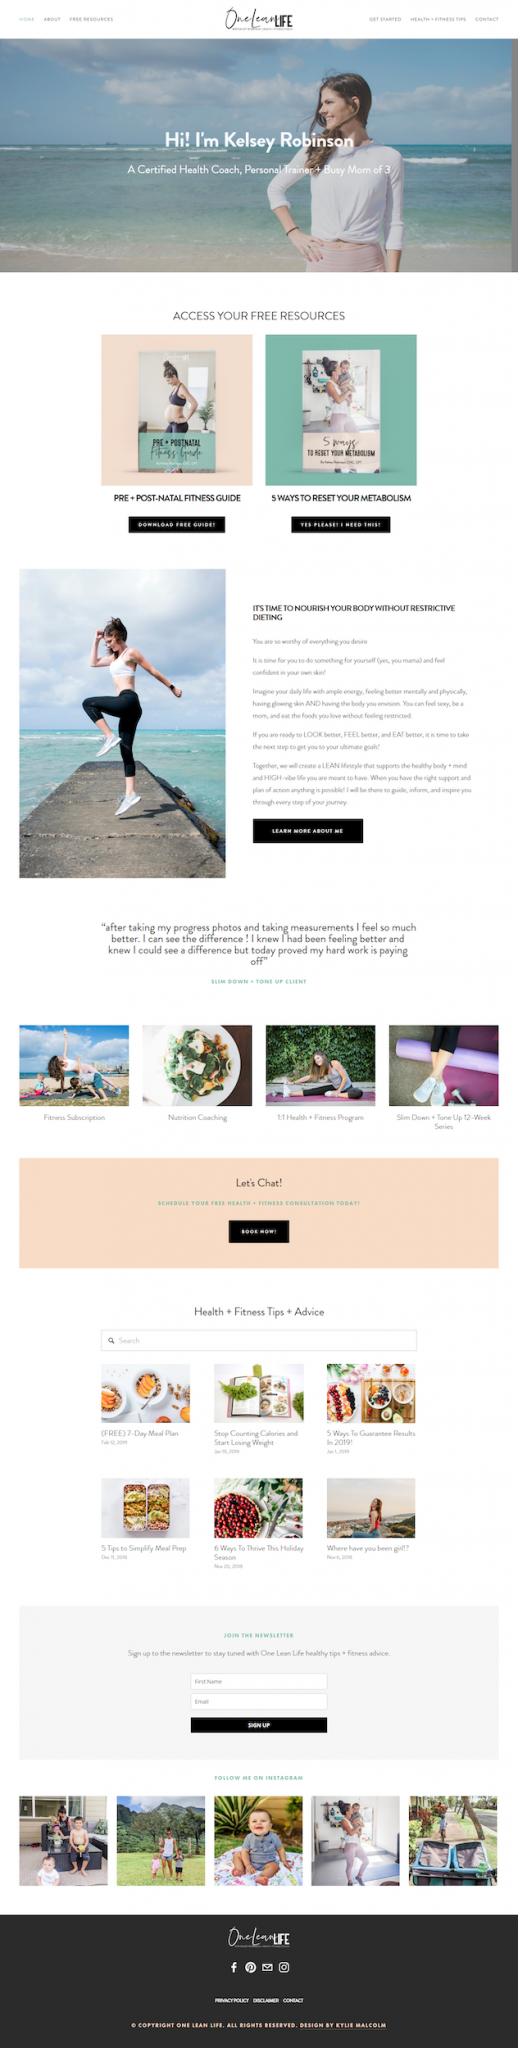 health coach squarespace website tidy up